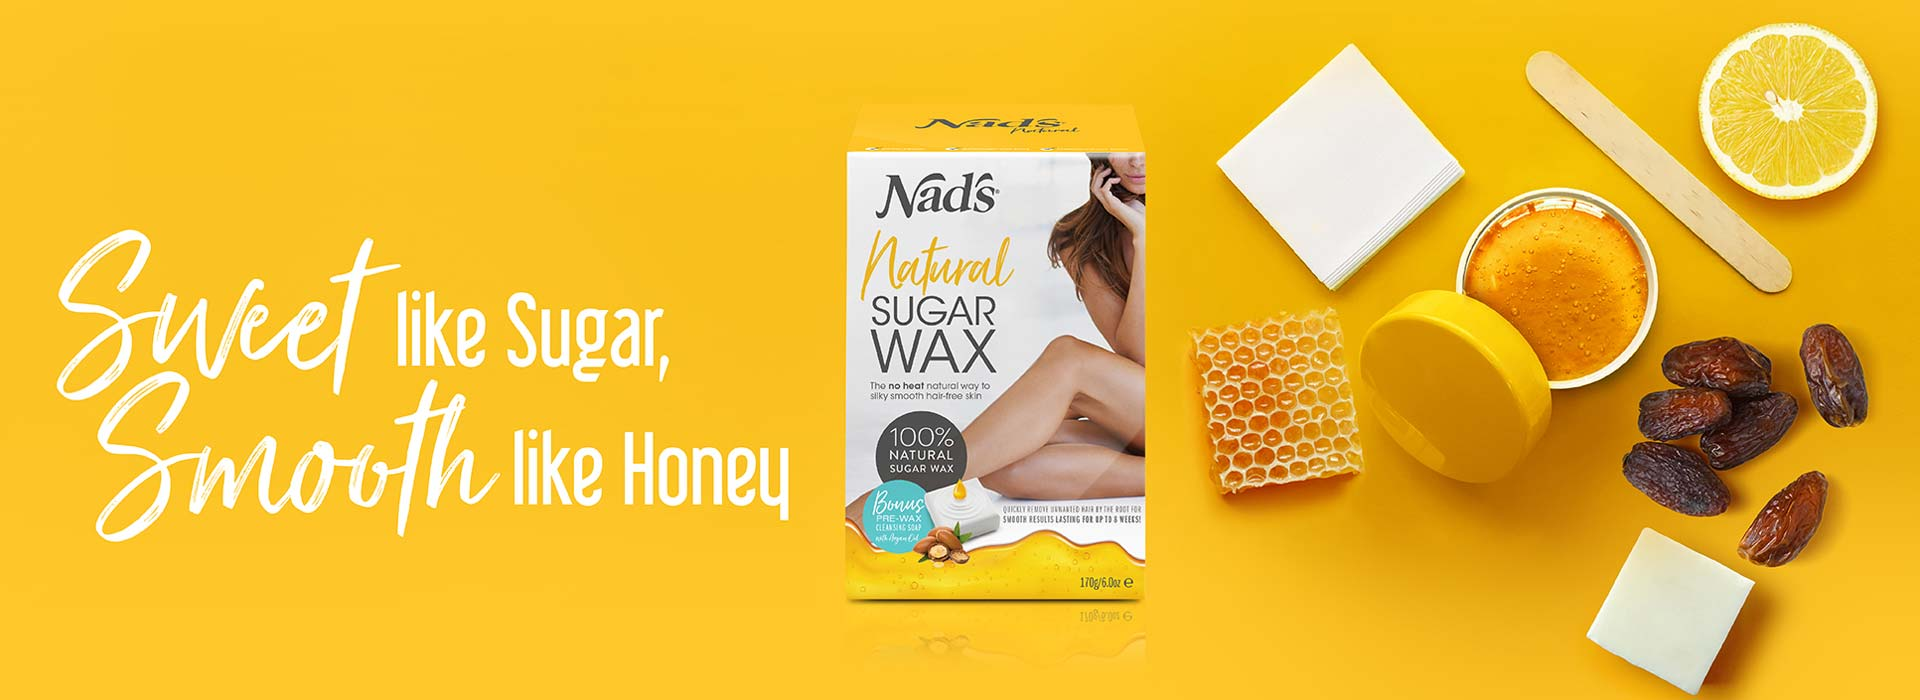 Nad's Natural Sugar Wax product, honeycomb, lemon and raisins next to script font Sweet like Sugar, Smooth like Honey